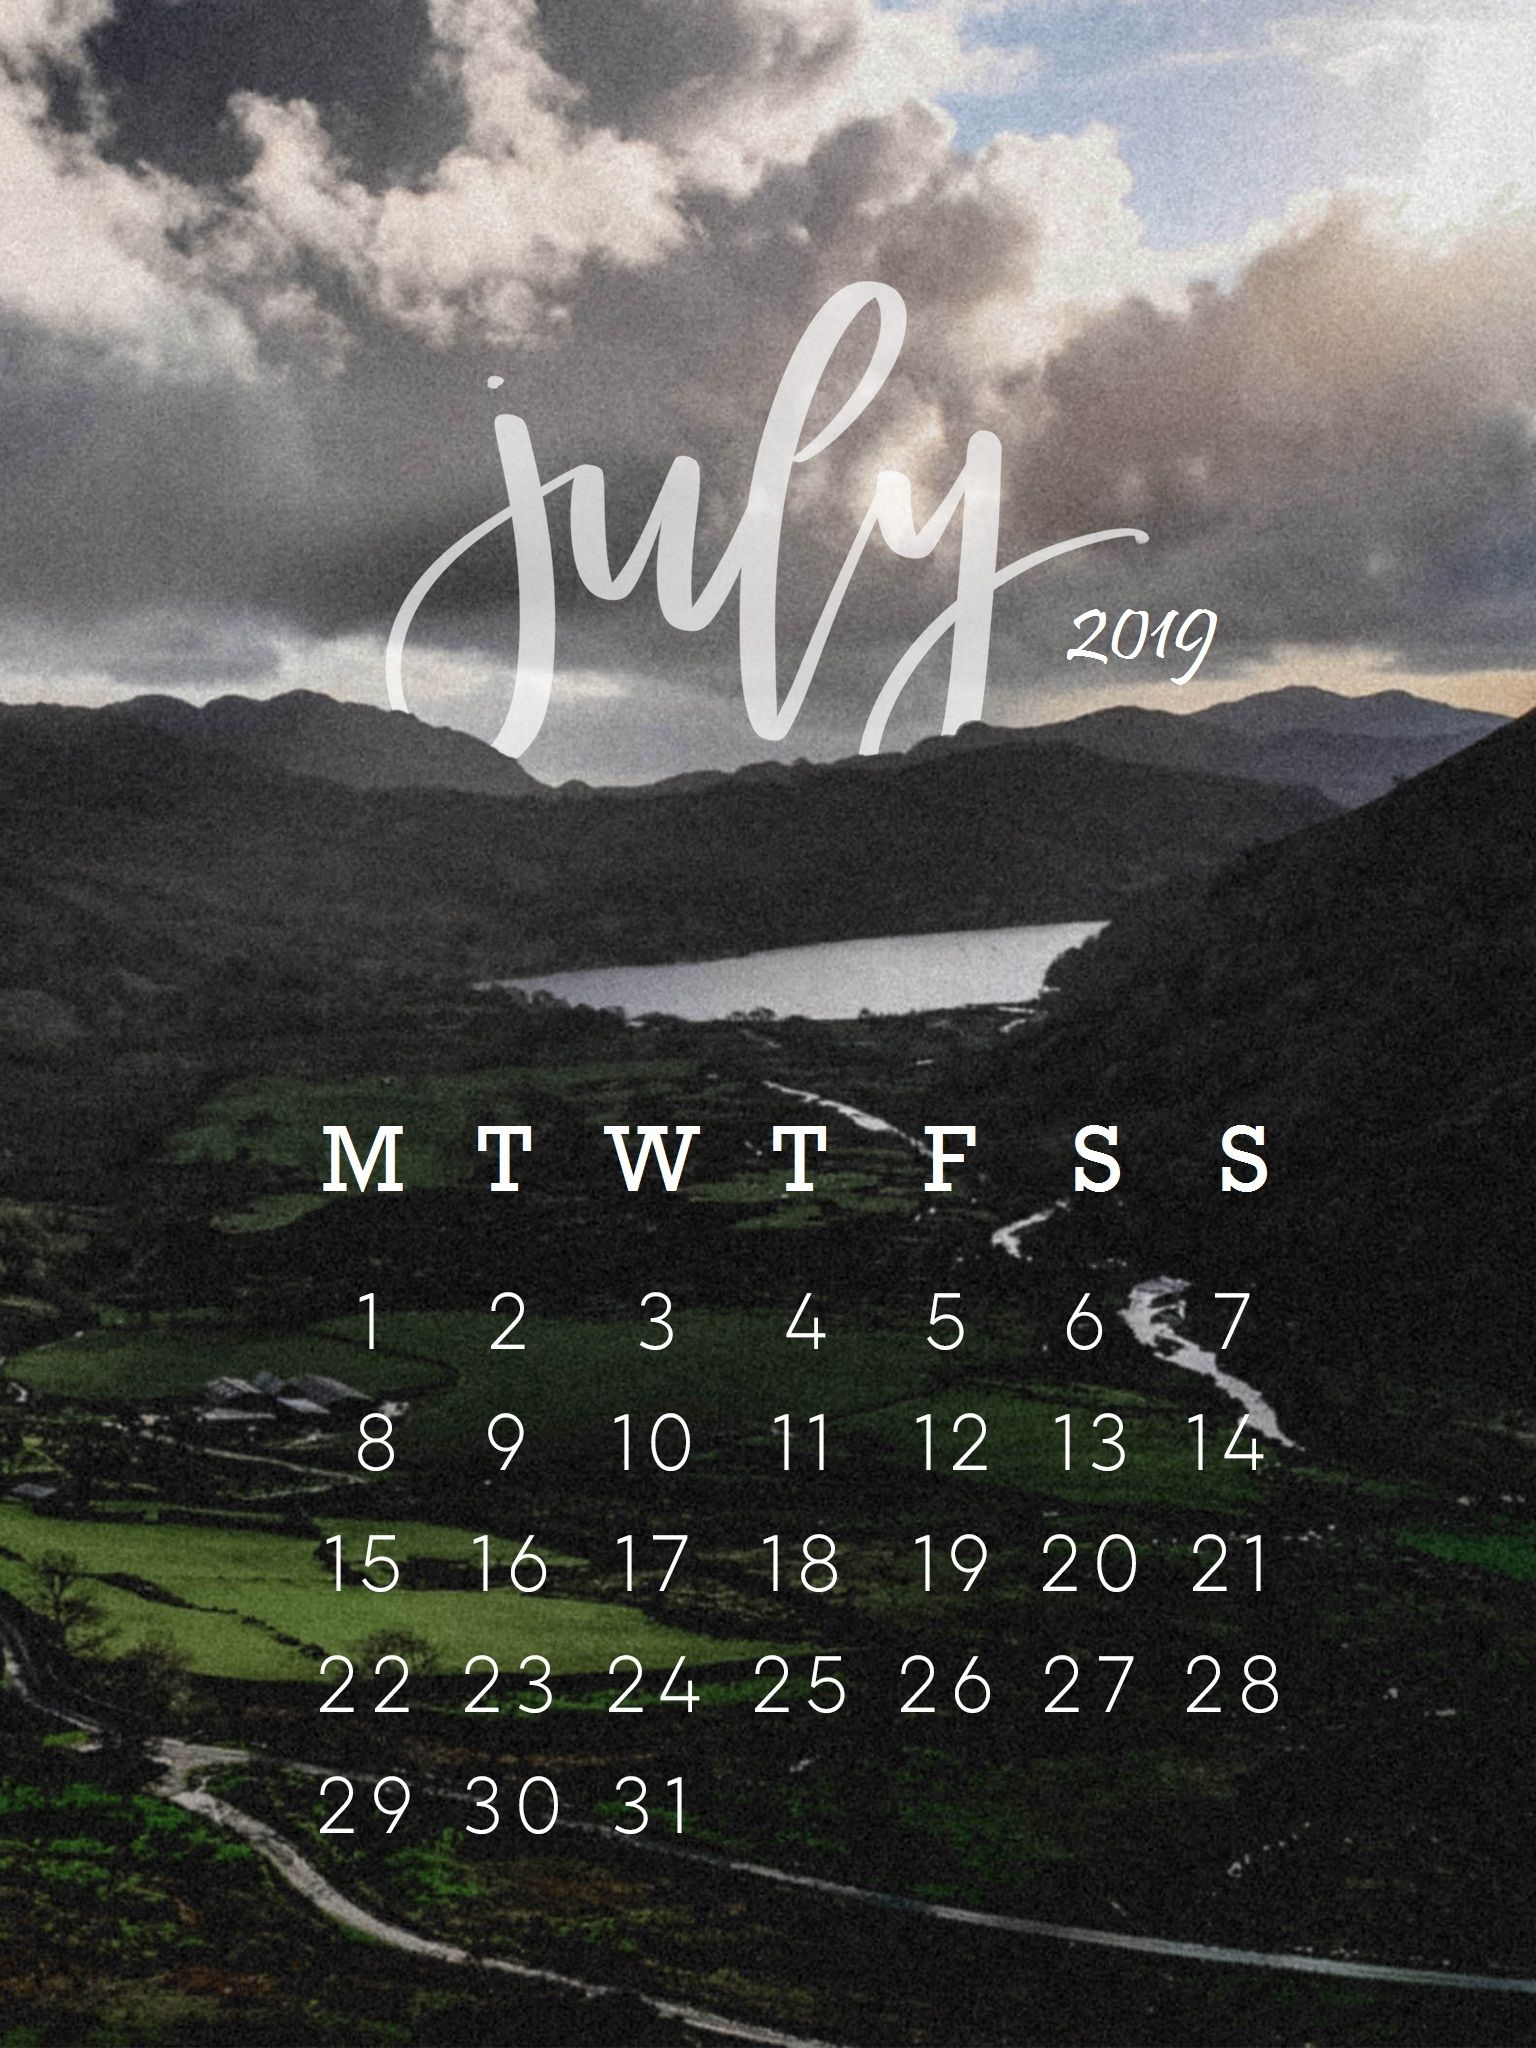 july 2019 iphone calendar wallpapers calendar 2019July 2019 1536x2048